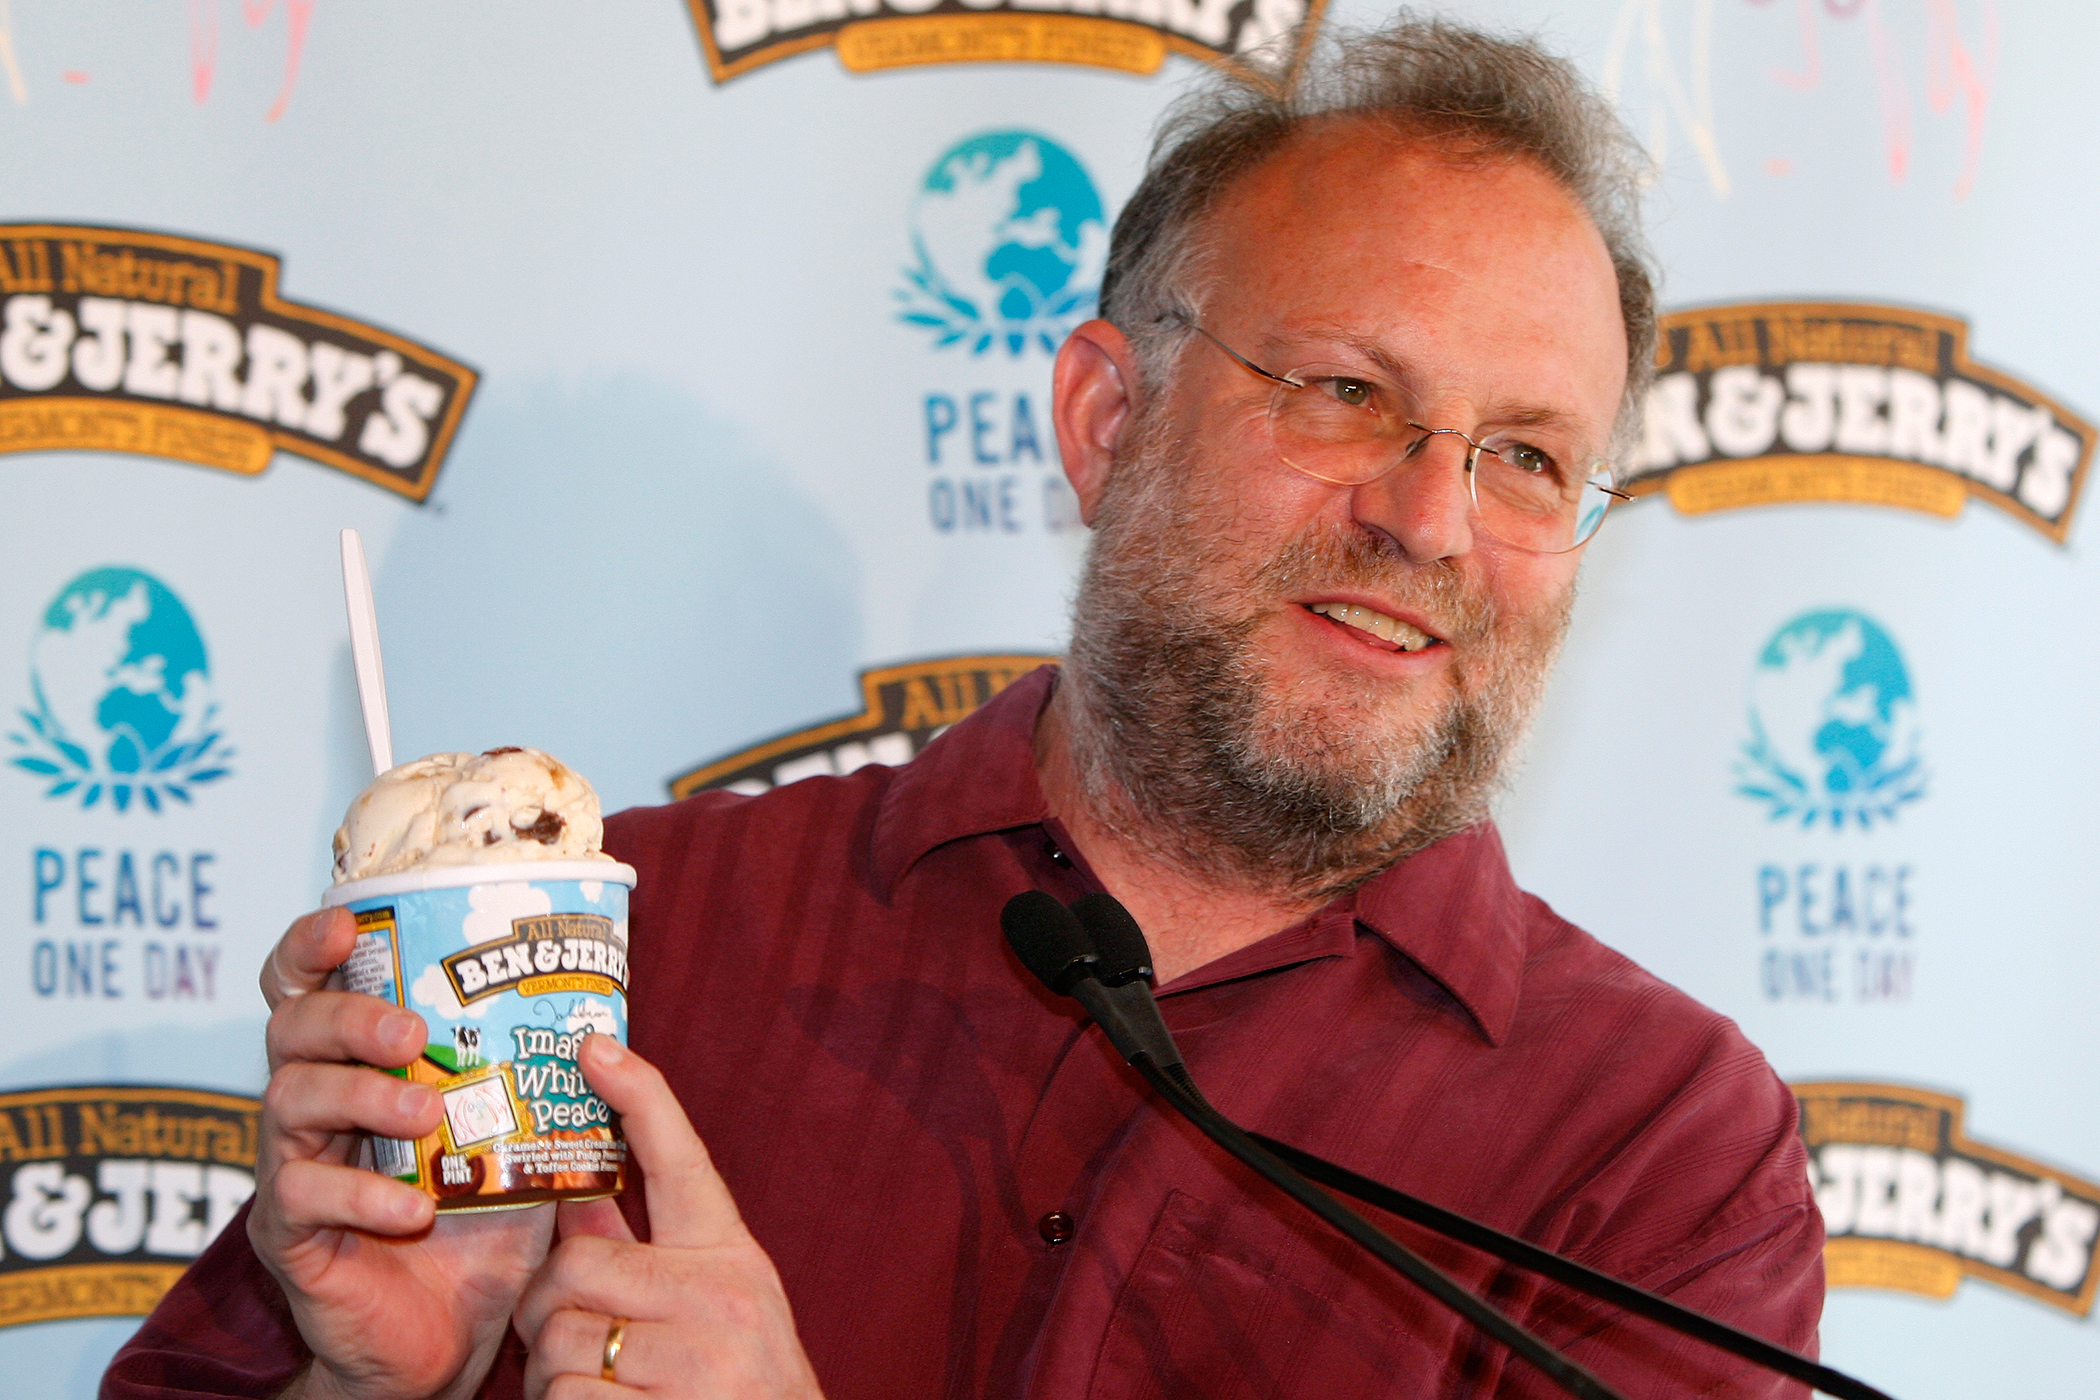 Jerry Greenfield, co-founder of Ben & Jerry's Homemade Holdings, Inc., shows Ben & Jerry's new flavour  Imagine Whirled Peace  during a promotional event in New York May 27, 2008. The new flavour is made up of caramel & sweet cream ice creams swirled with fudge pieces and toffee cookie pieces.